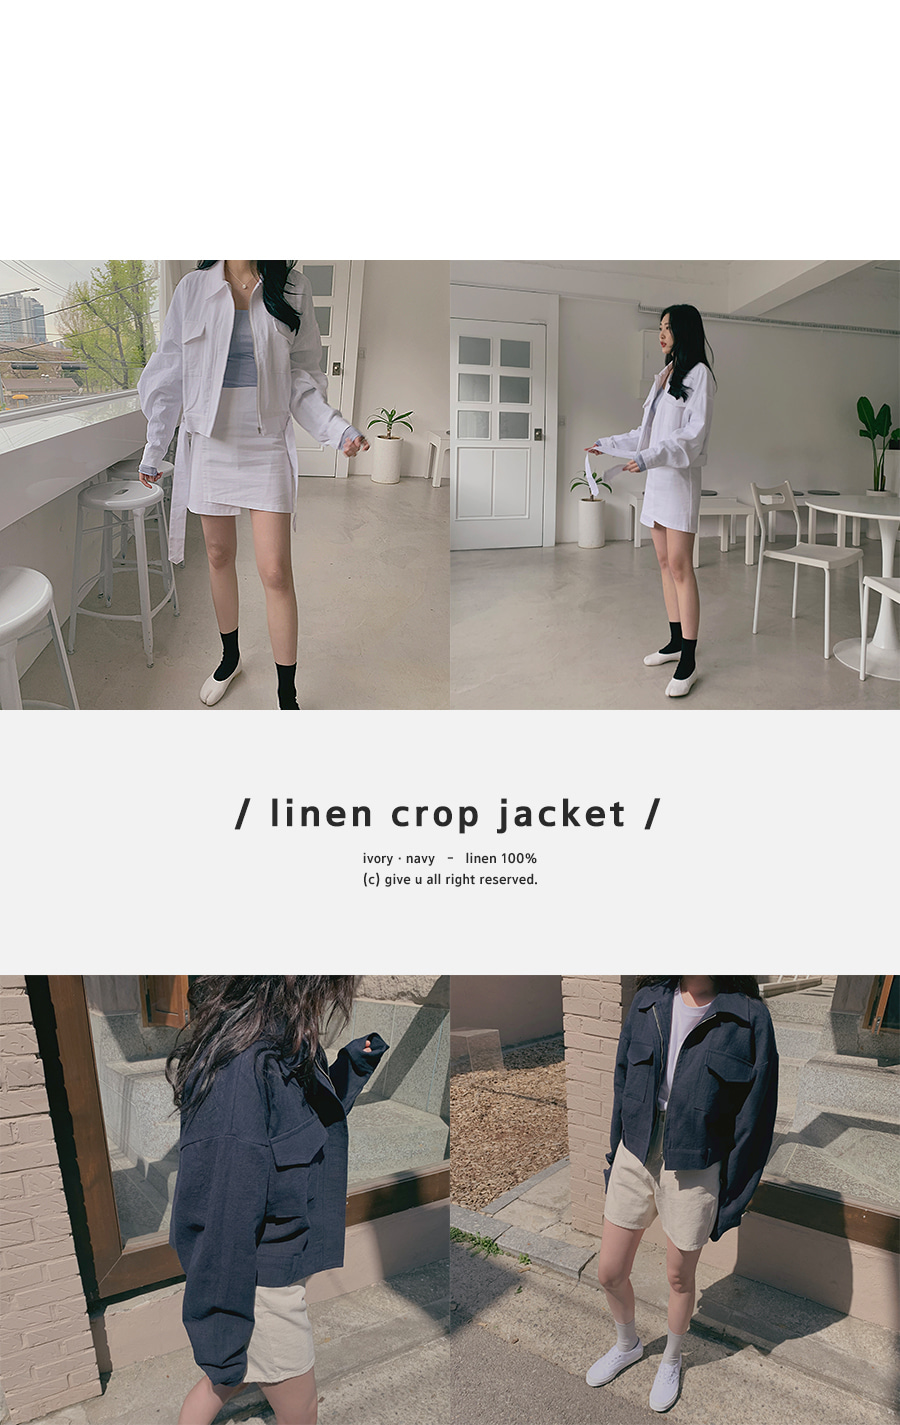 Linen cropped jacket